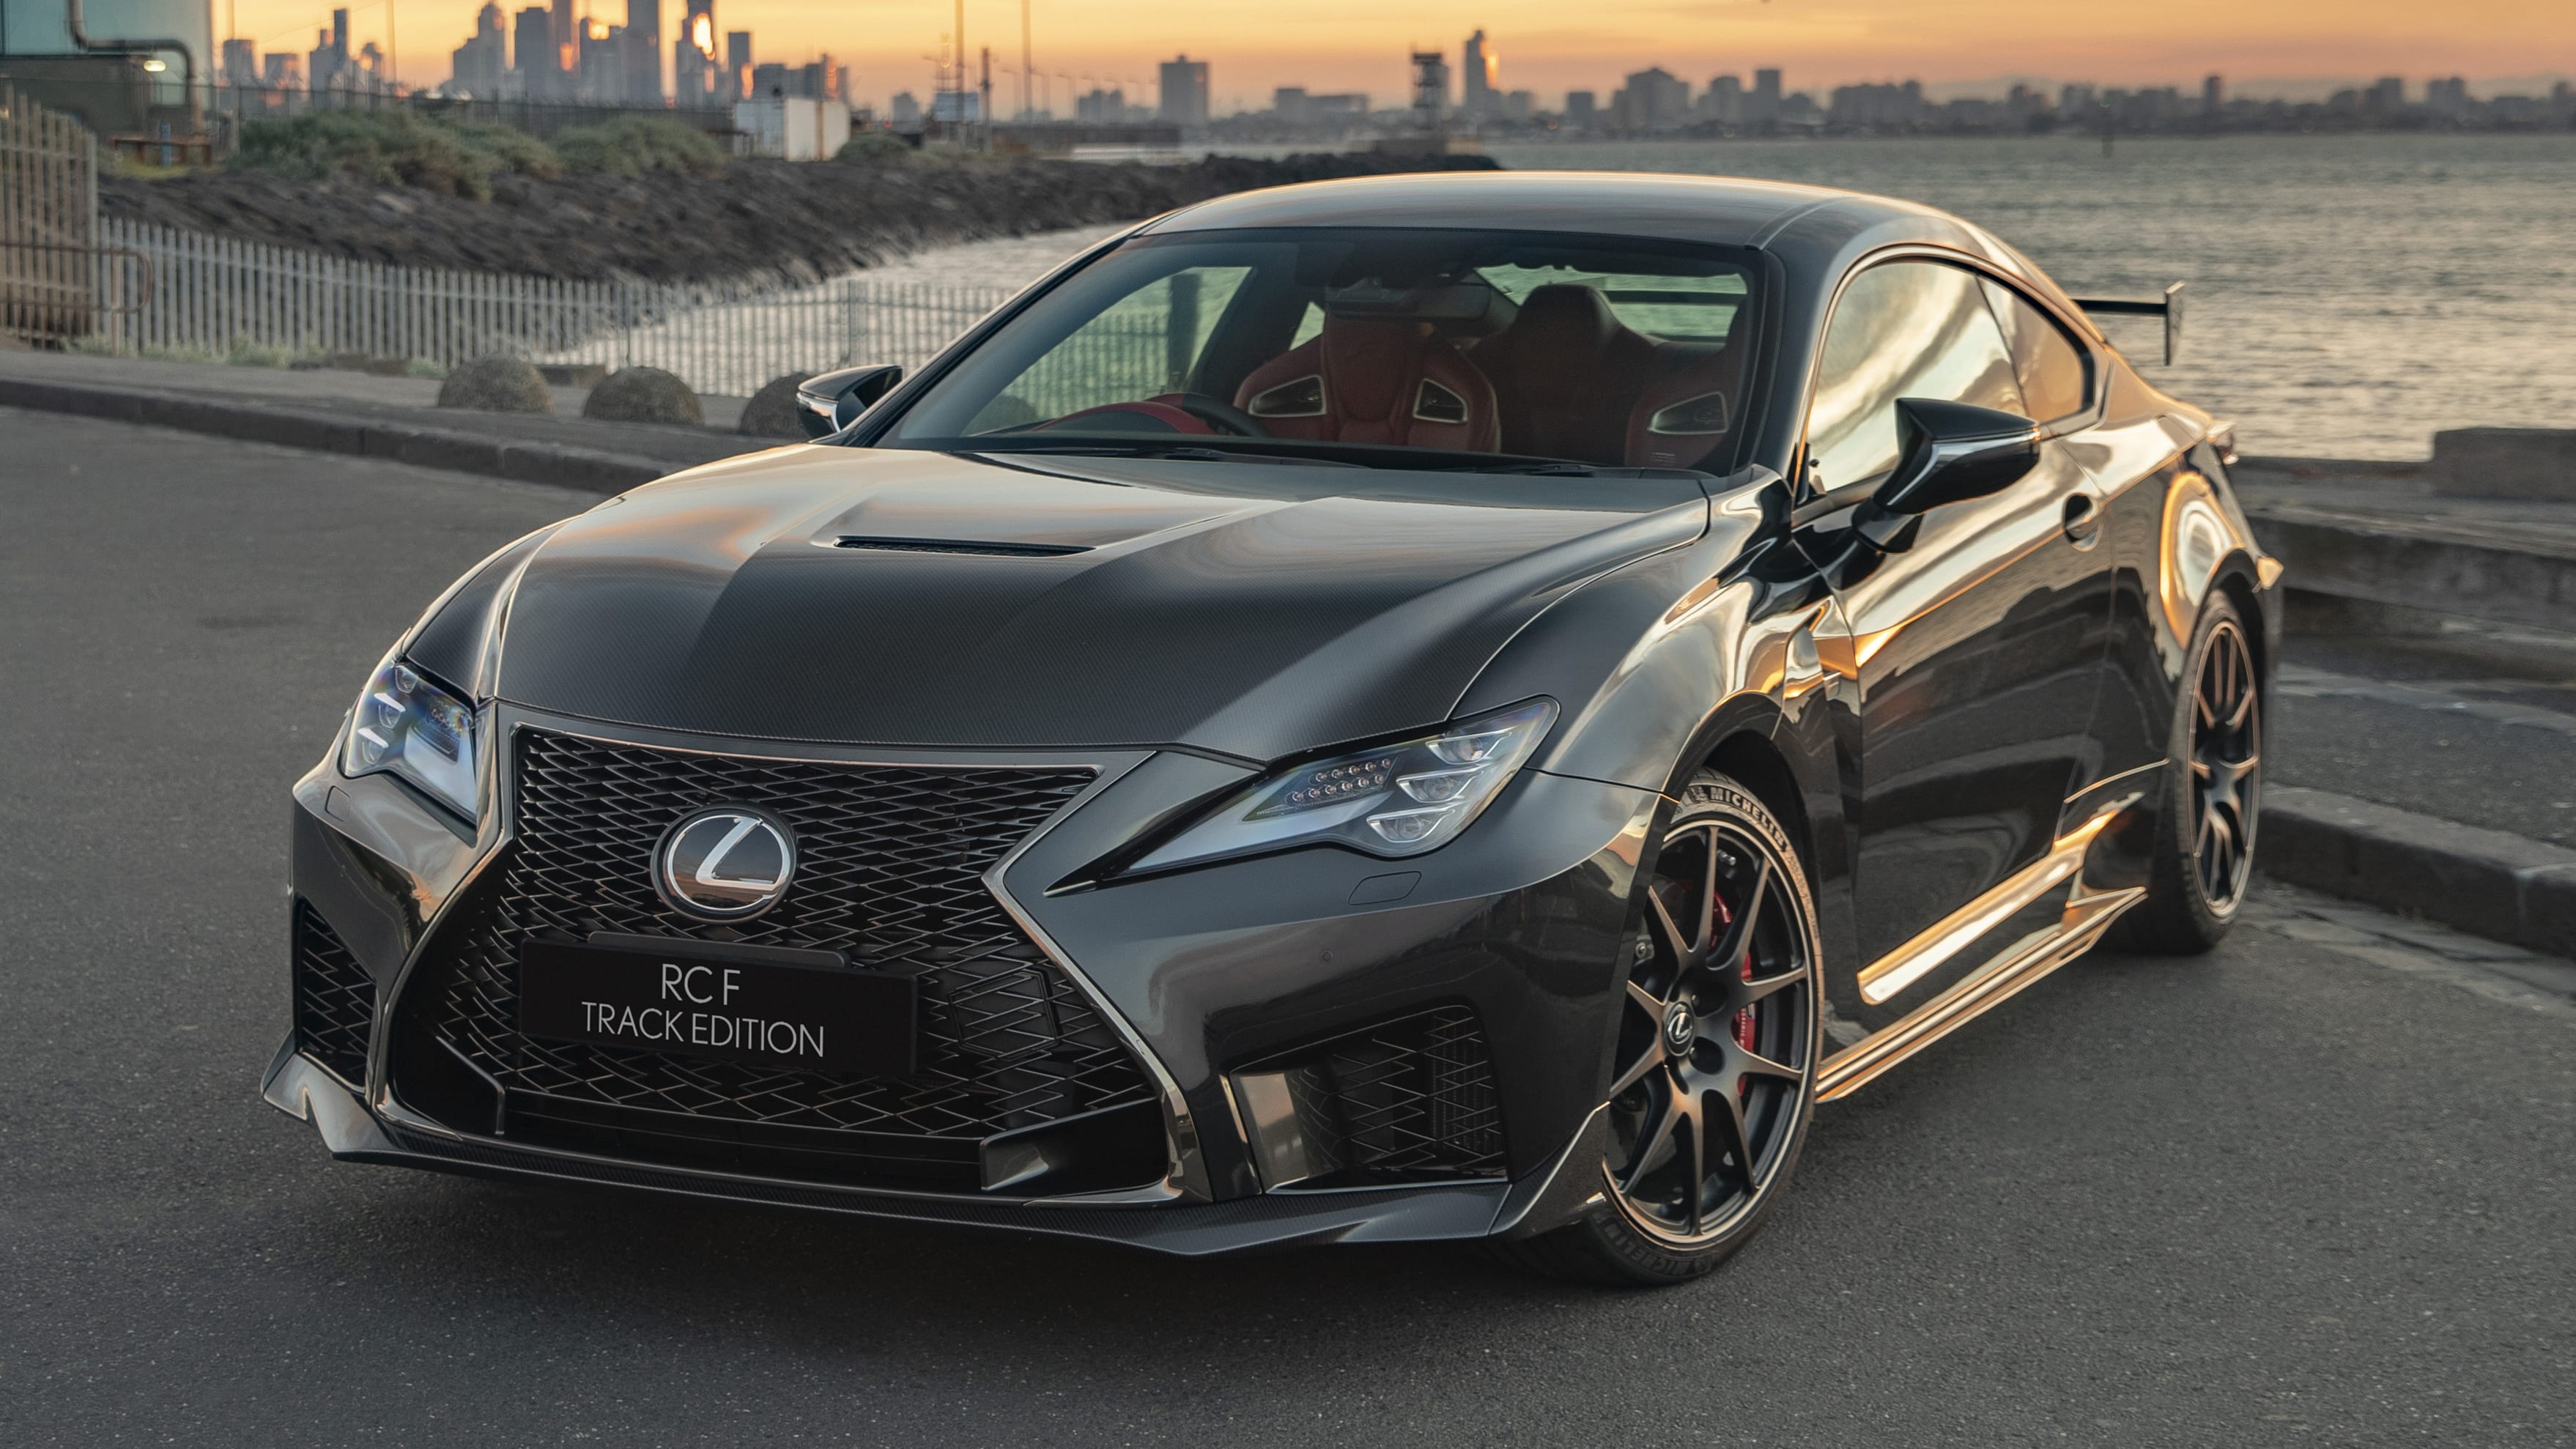 Lexus Rcf Track Edition Albumccars Cars Images Collection